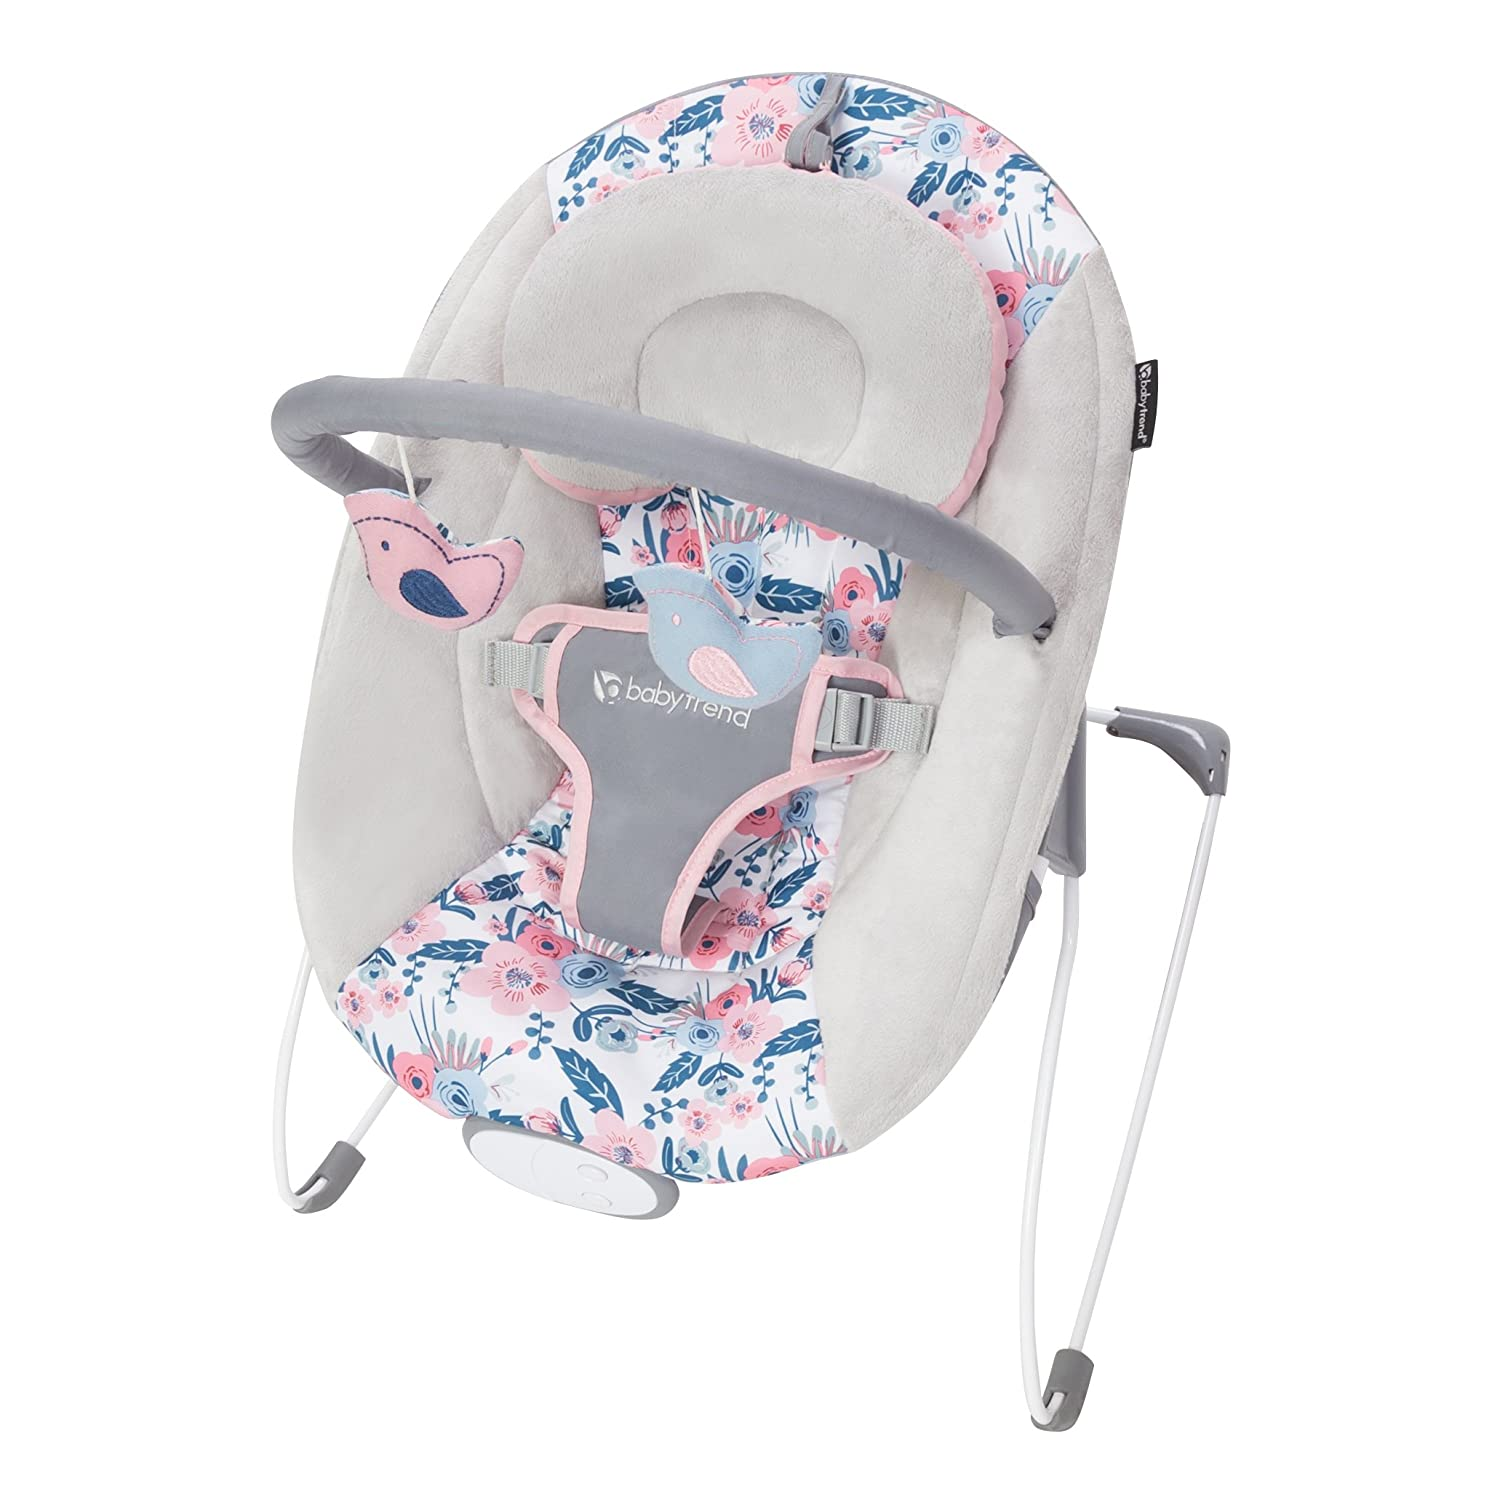 Baby Trend EZ Bouncer, Bluebell